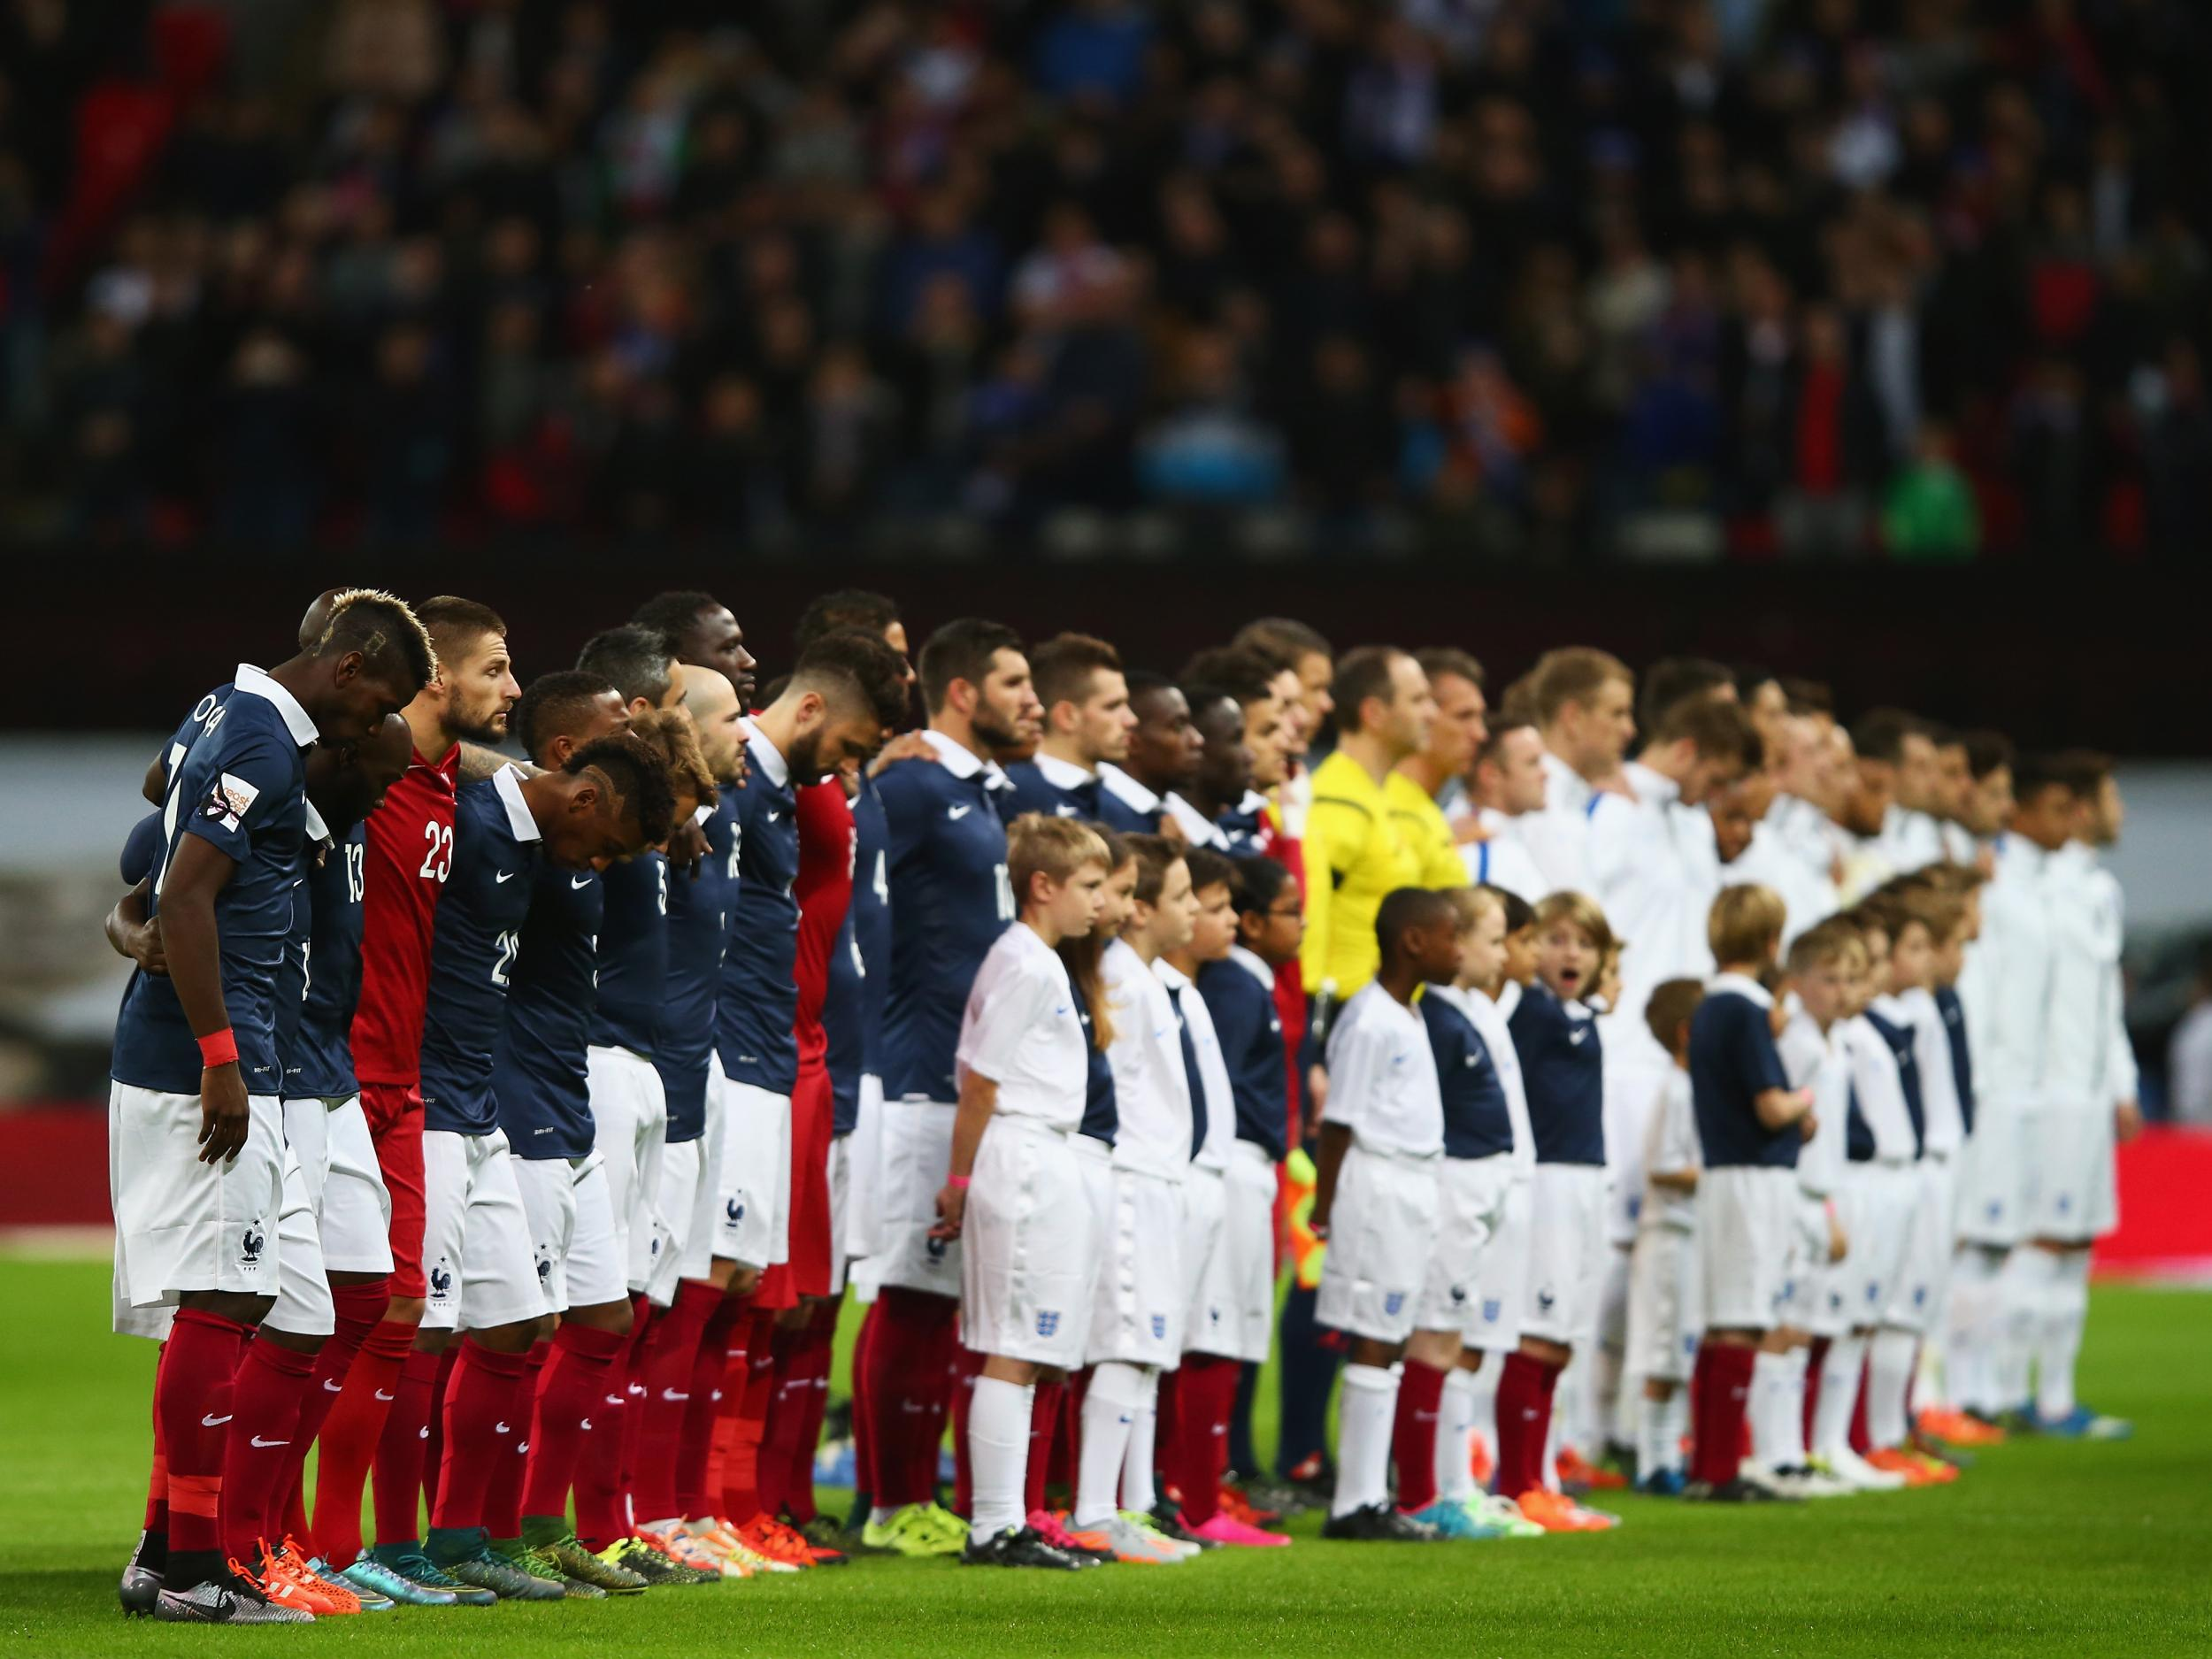 French newspaper print God Save the Queen lyrics in French ahead of Stade de France friendly against England